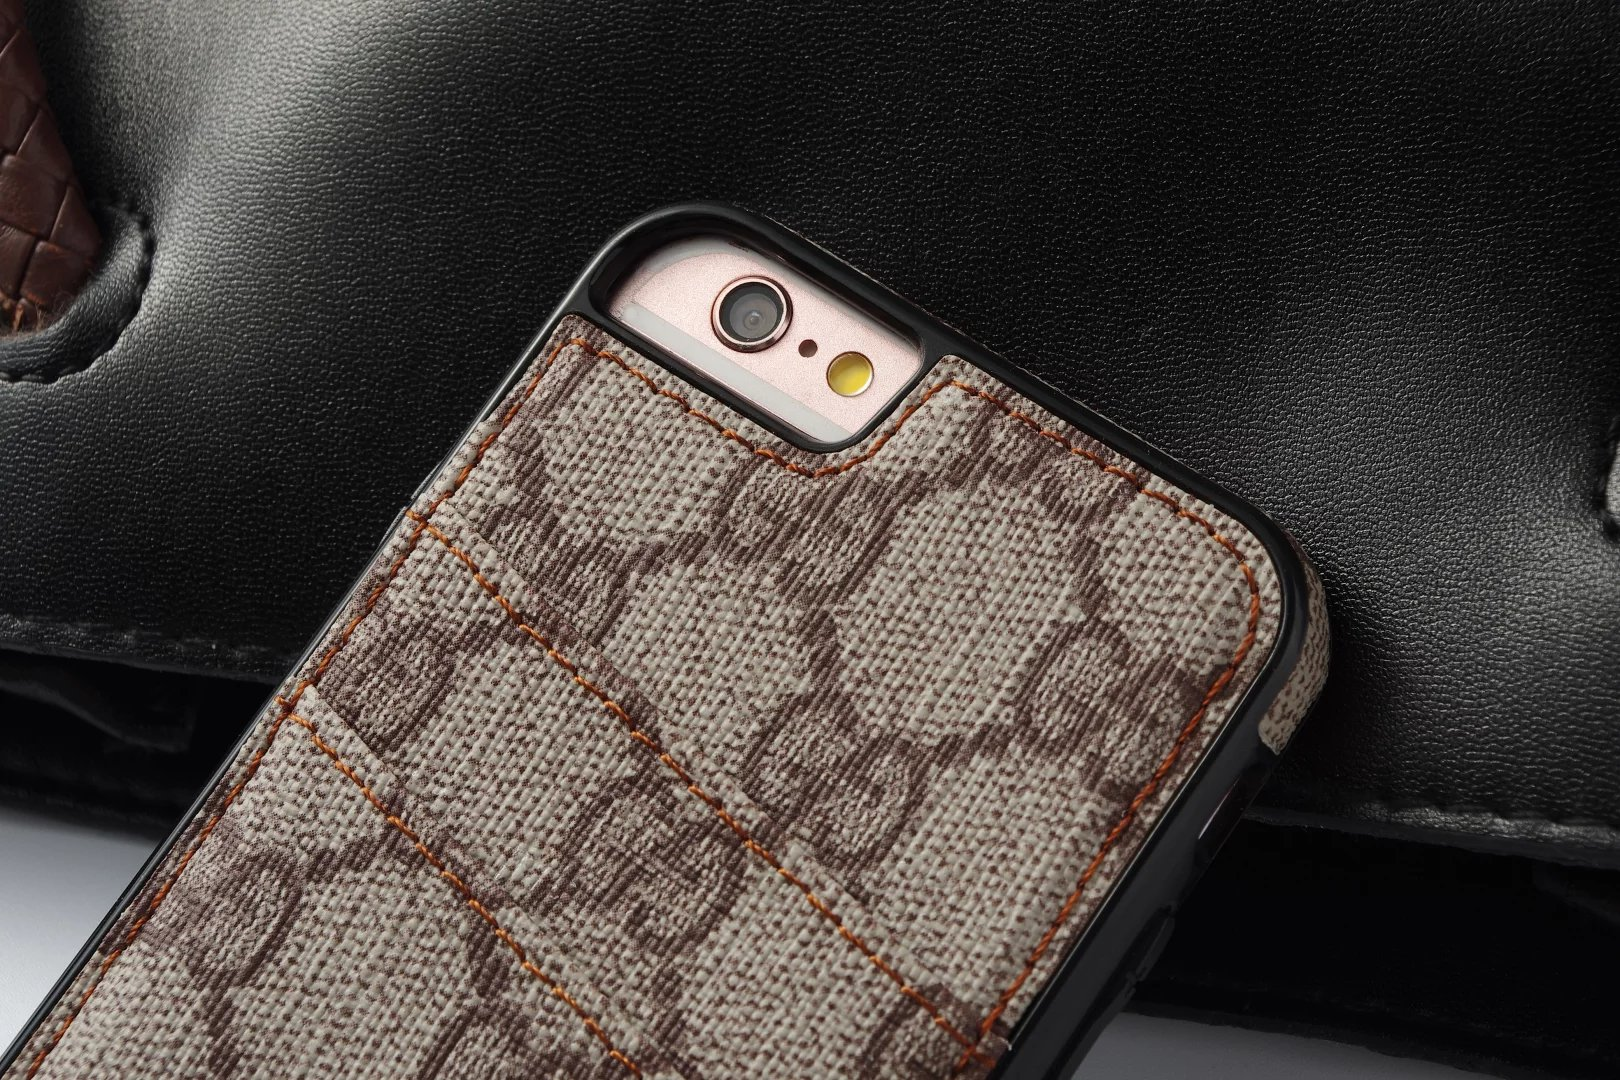 best cover for iphone 8 designer phone cases for iphone 8 Louis Vuitton iphone 8 case designer iphone 8 wallet make an iphone case 8 iphone case iphone 8 cell phone cases accessory case mophie 8